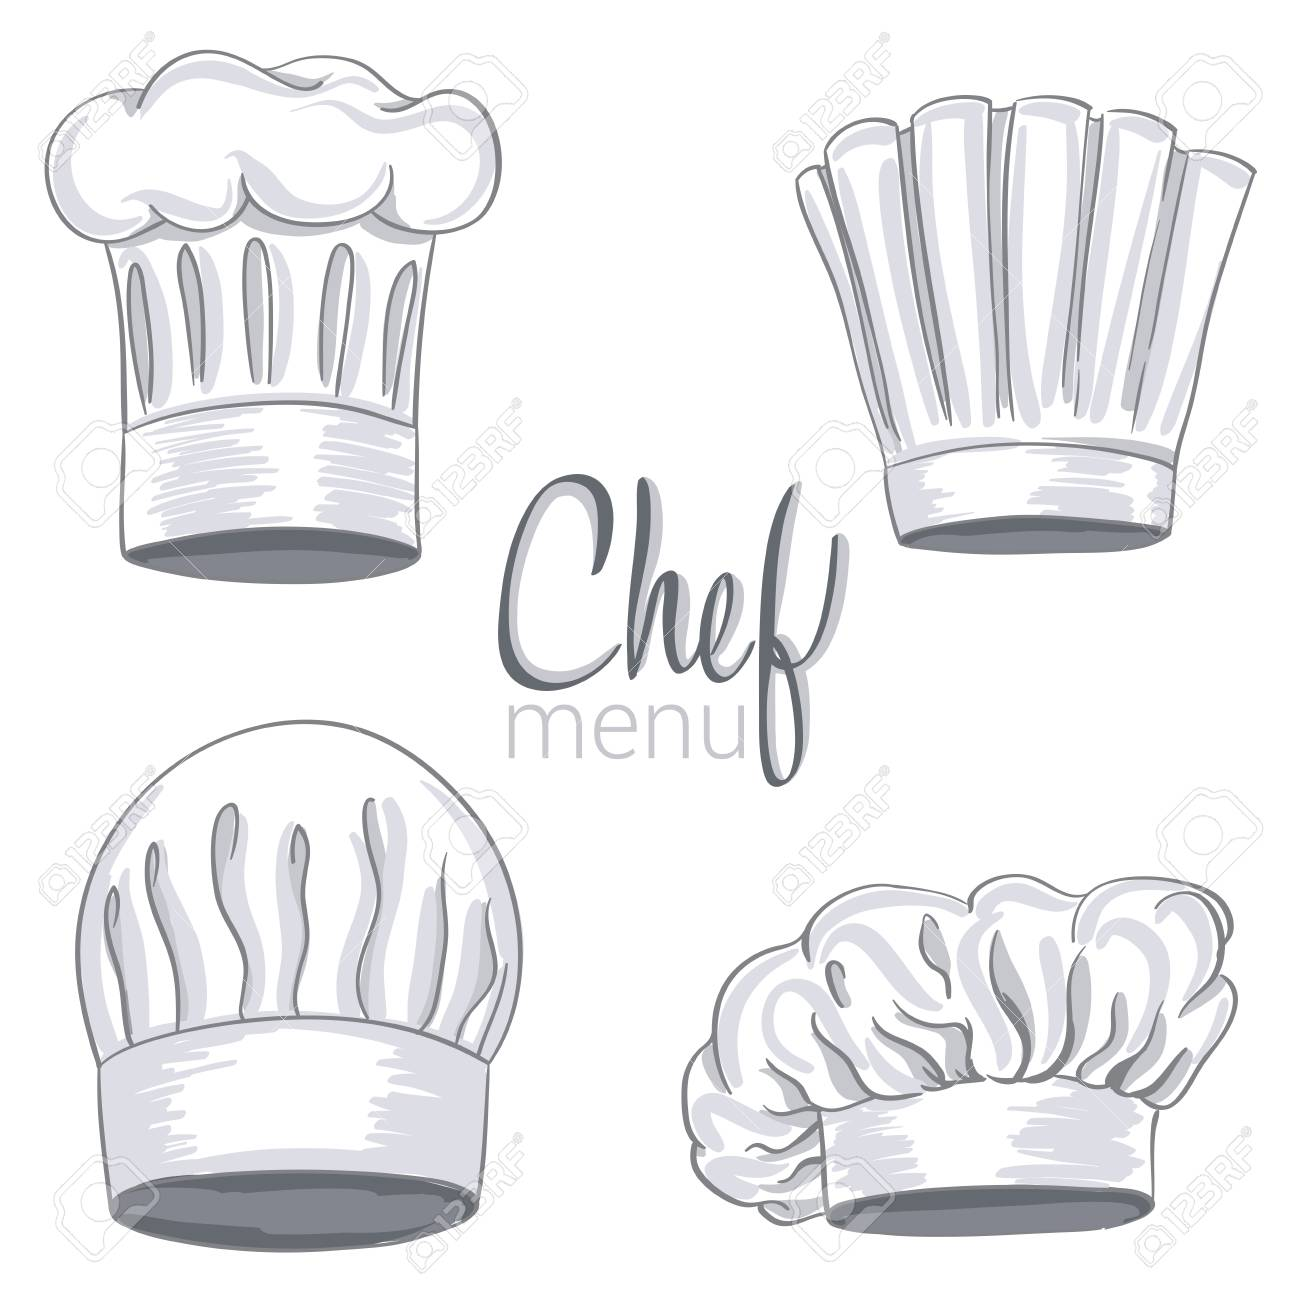 Set of hand drawn chef hat on white. Cooking caps drawings isolated on  white background fb226a9e42df